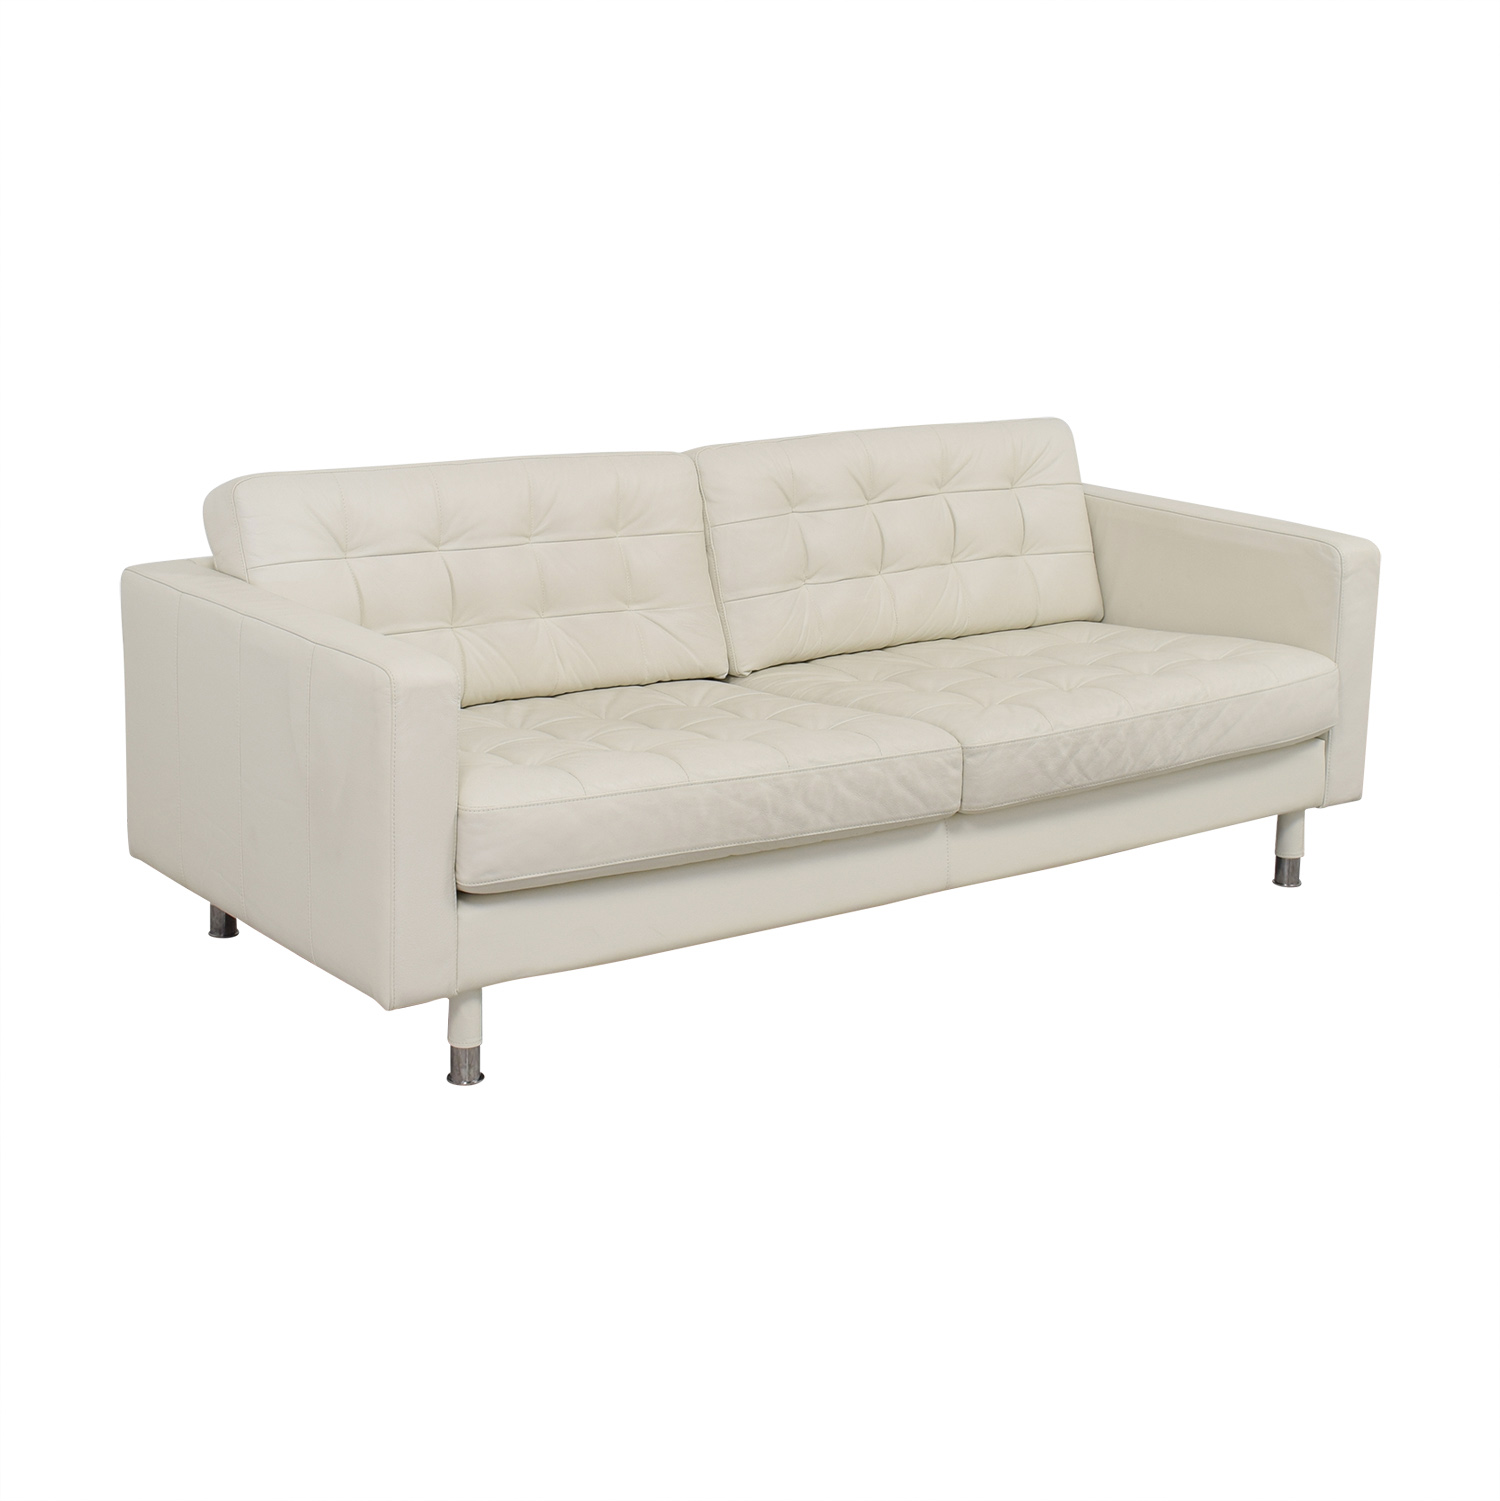 67 off ikea ikea tufted white leather couch sofas. Black Bedroom Furniture Sets. Home Design Ideas